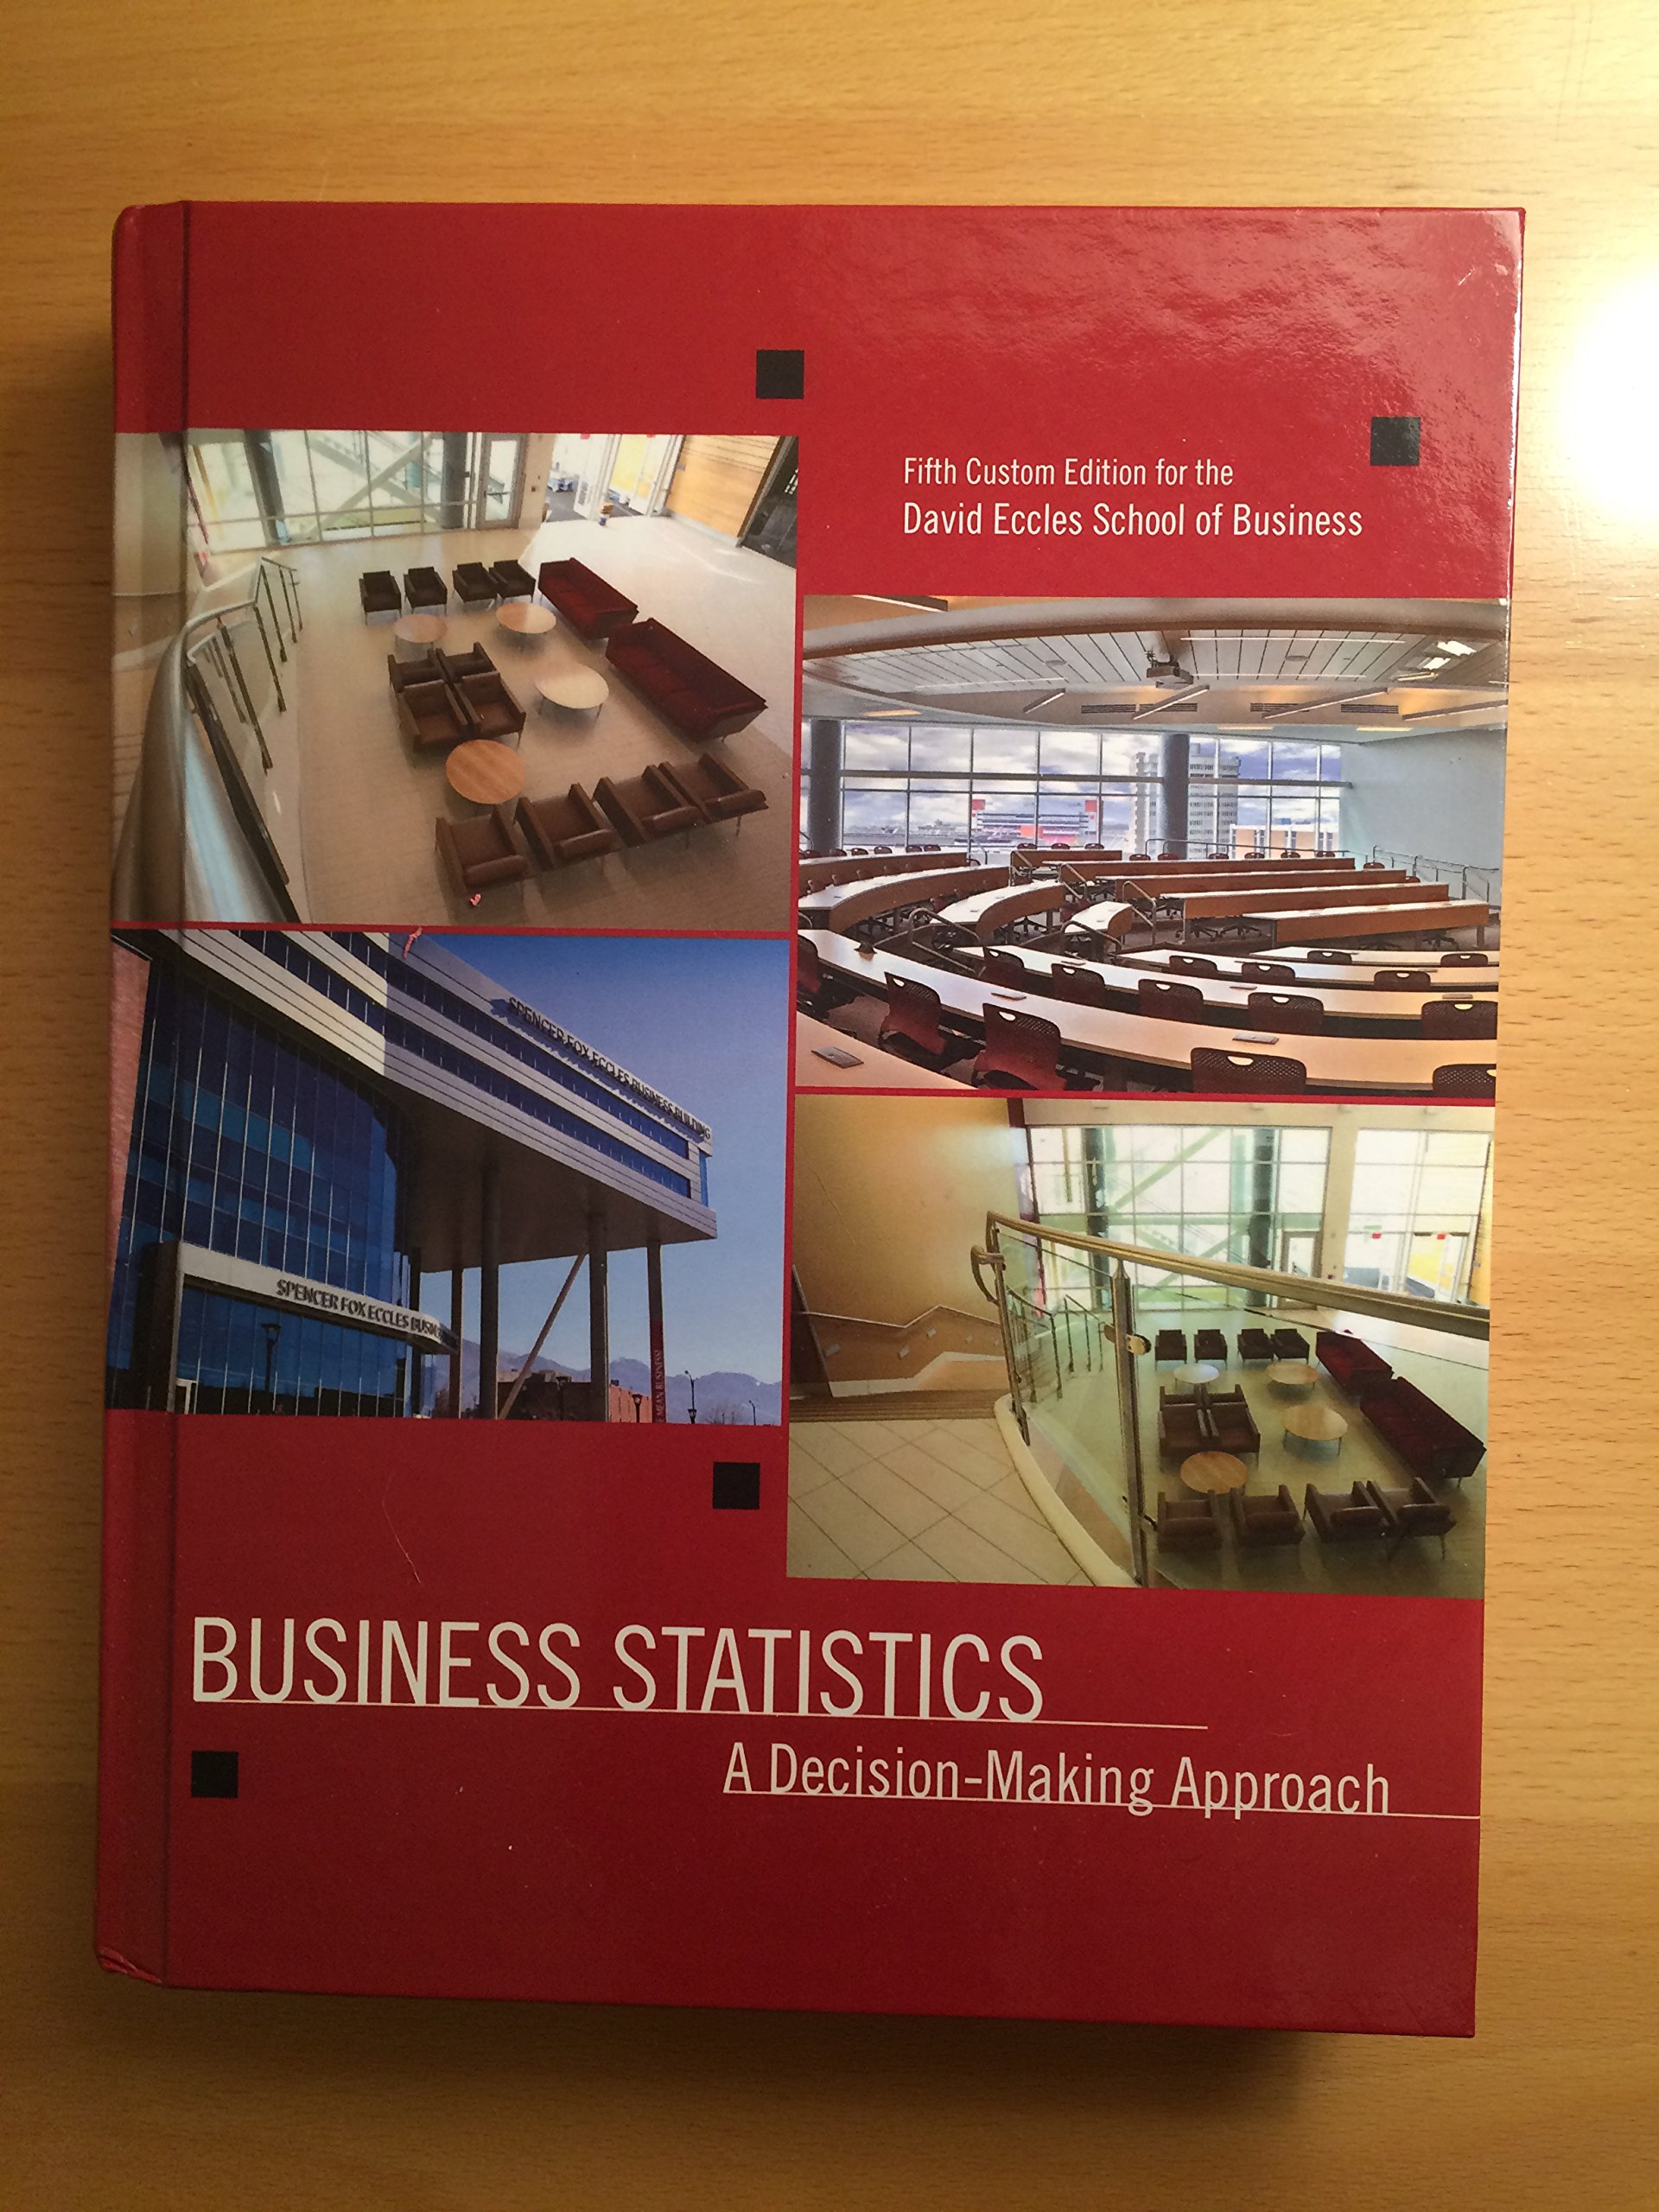 Business statistics a decision making approach david f groebner business statistics a decision making approach david f groebner patrick w shannon phillip c fry tariq mughal jr robert a donnelly 9781269628952 fandeluxe Image collections